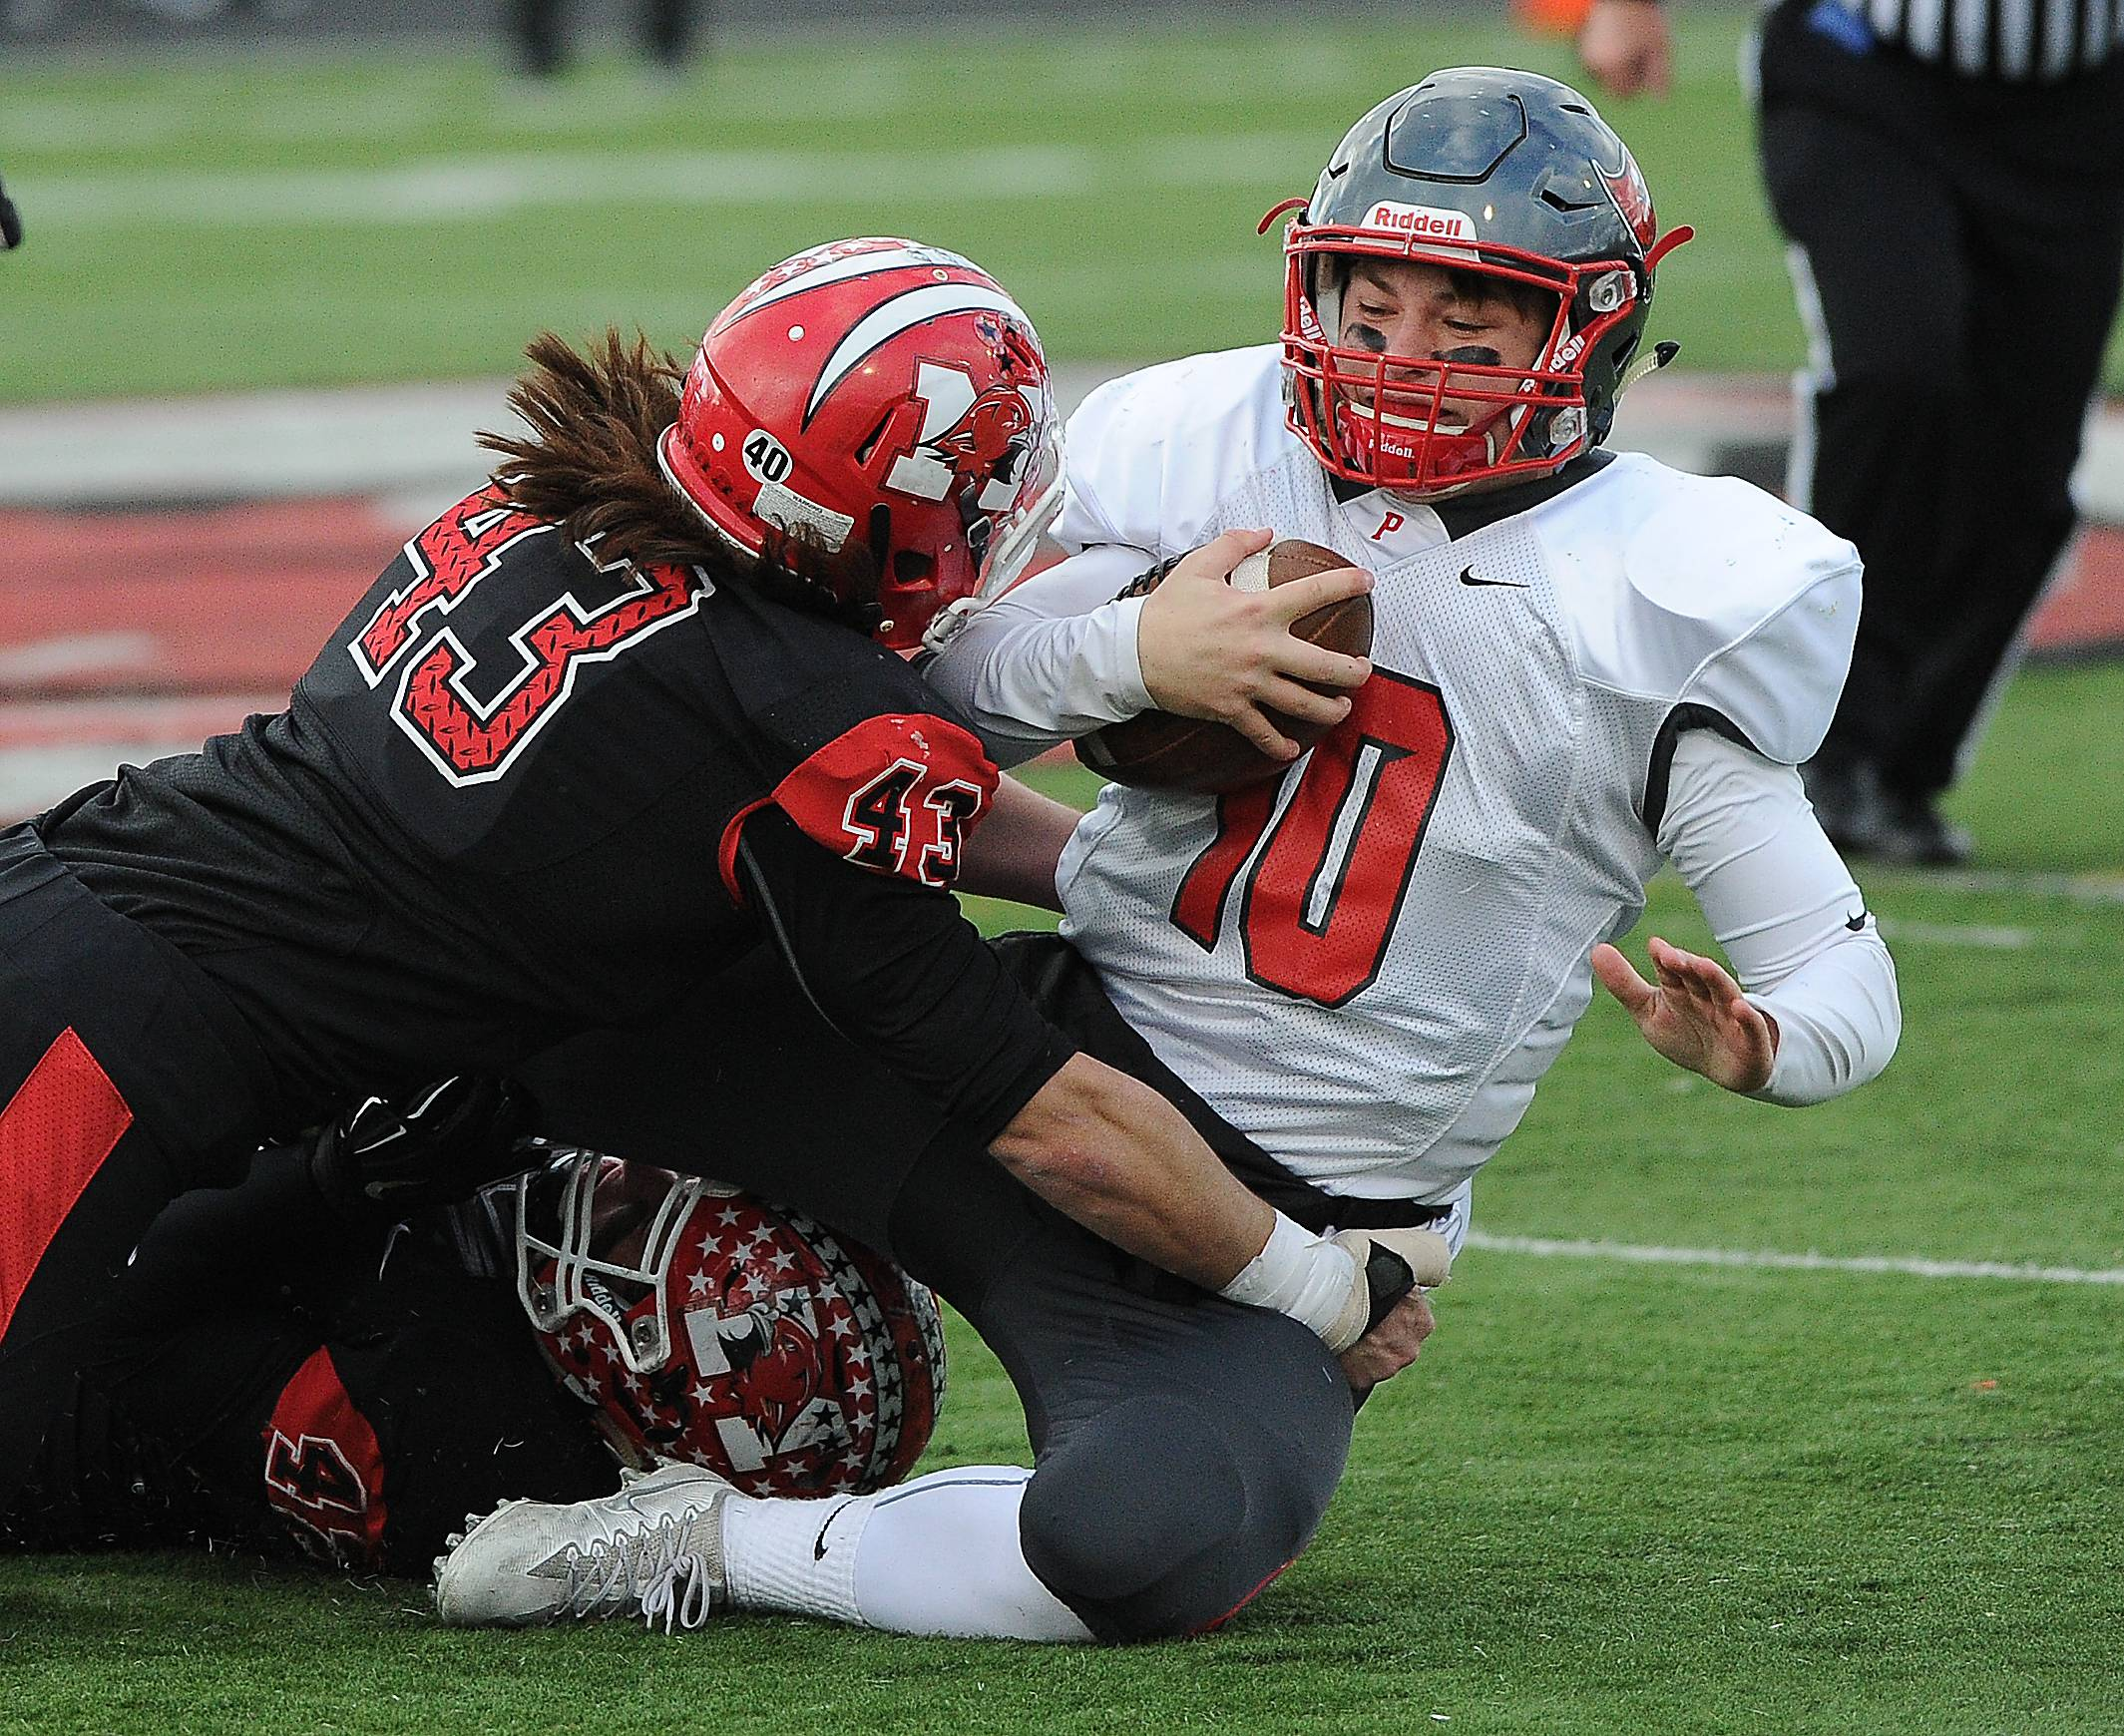 Images: Palatine vs. Maine South, semifinal playoff football